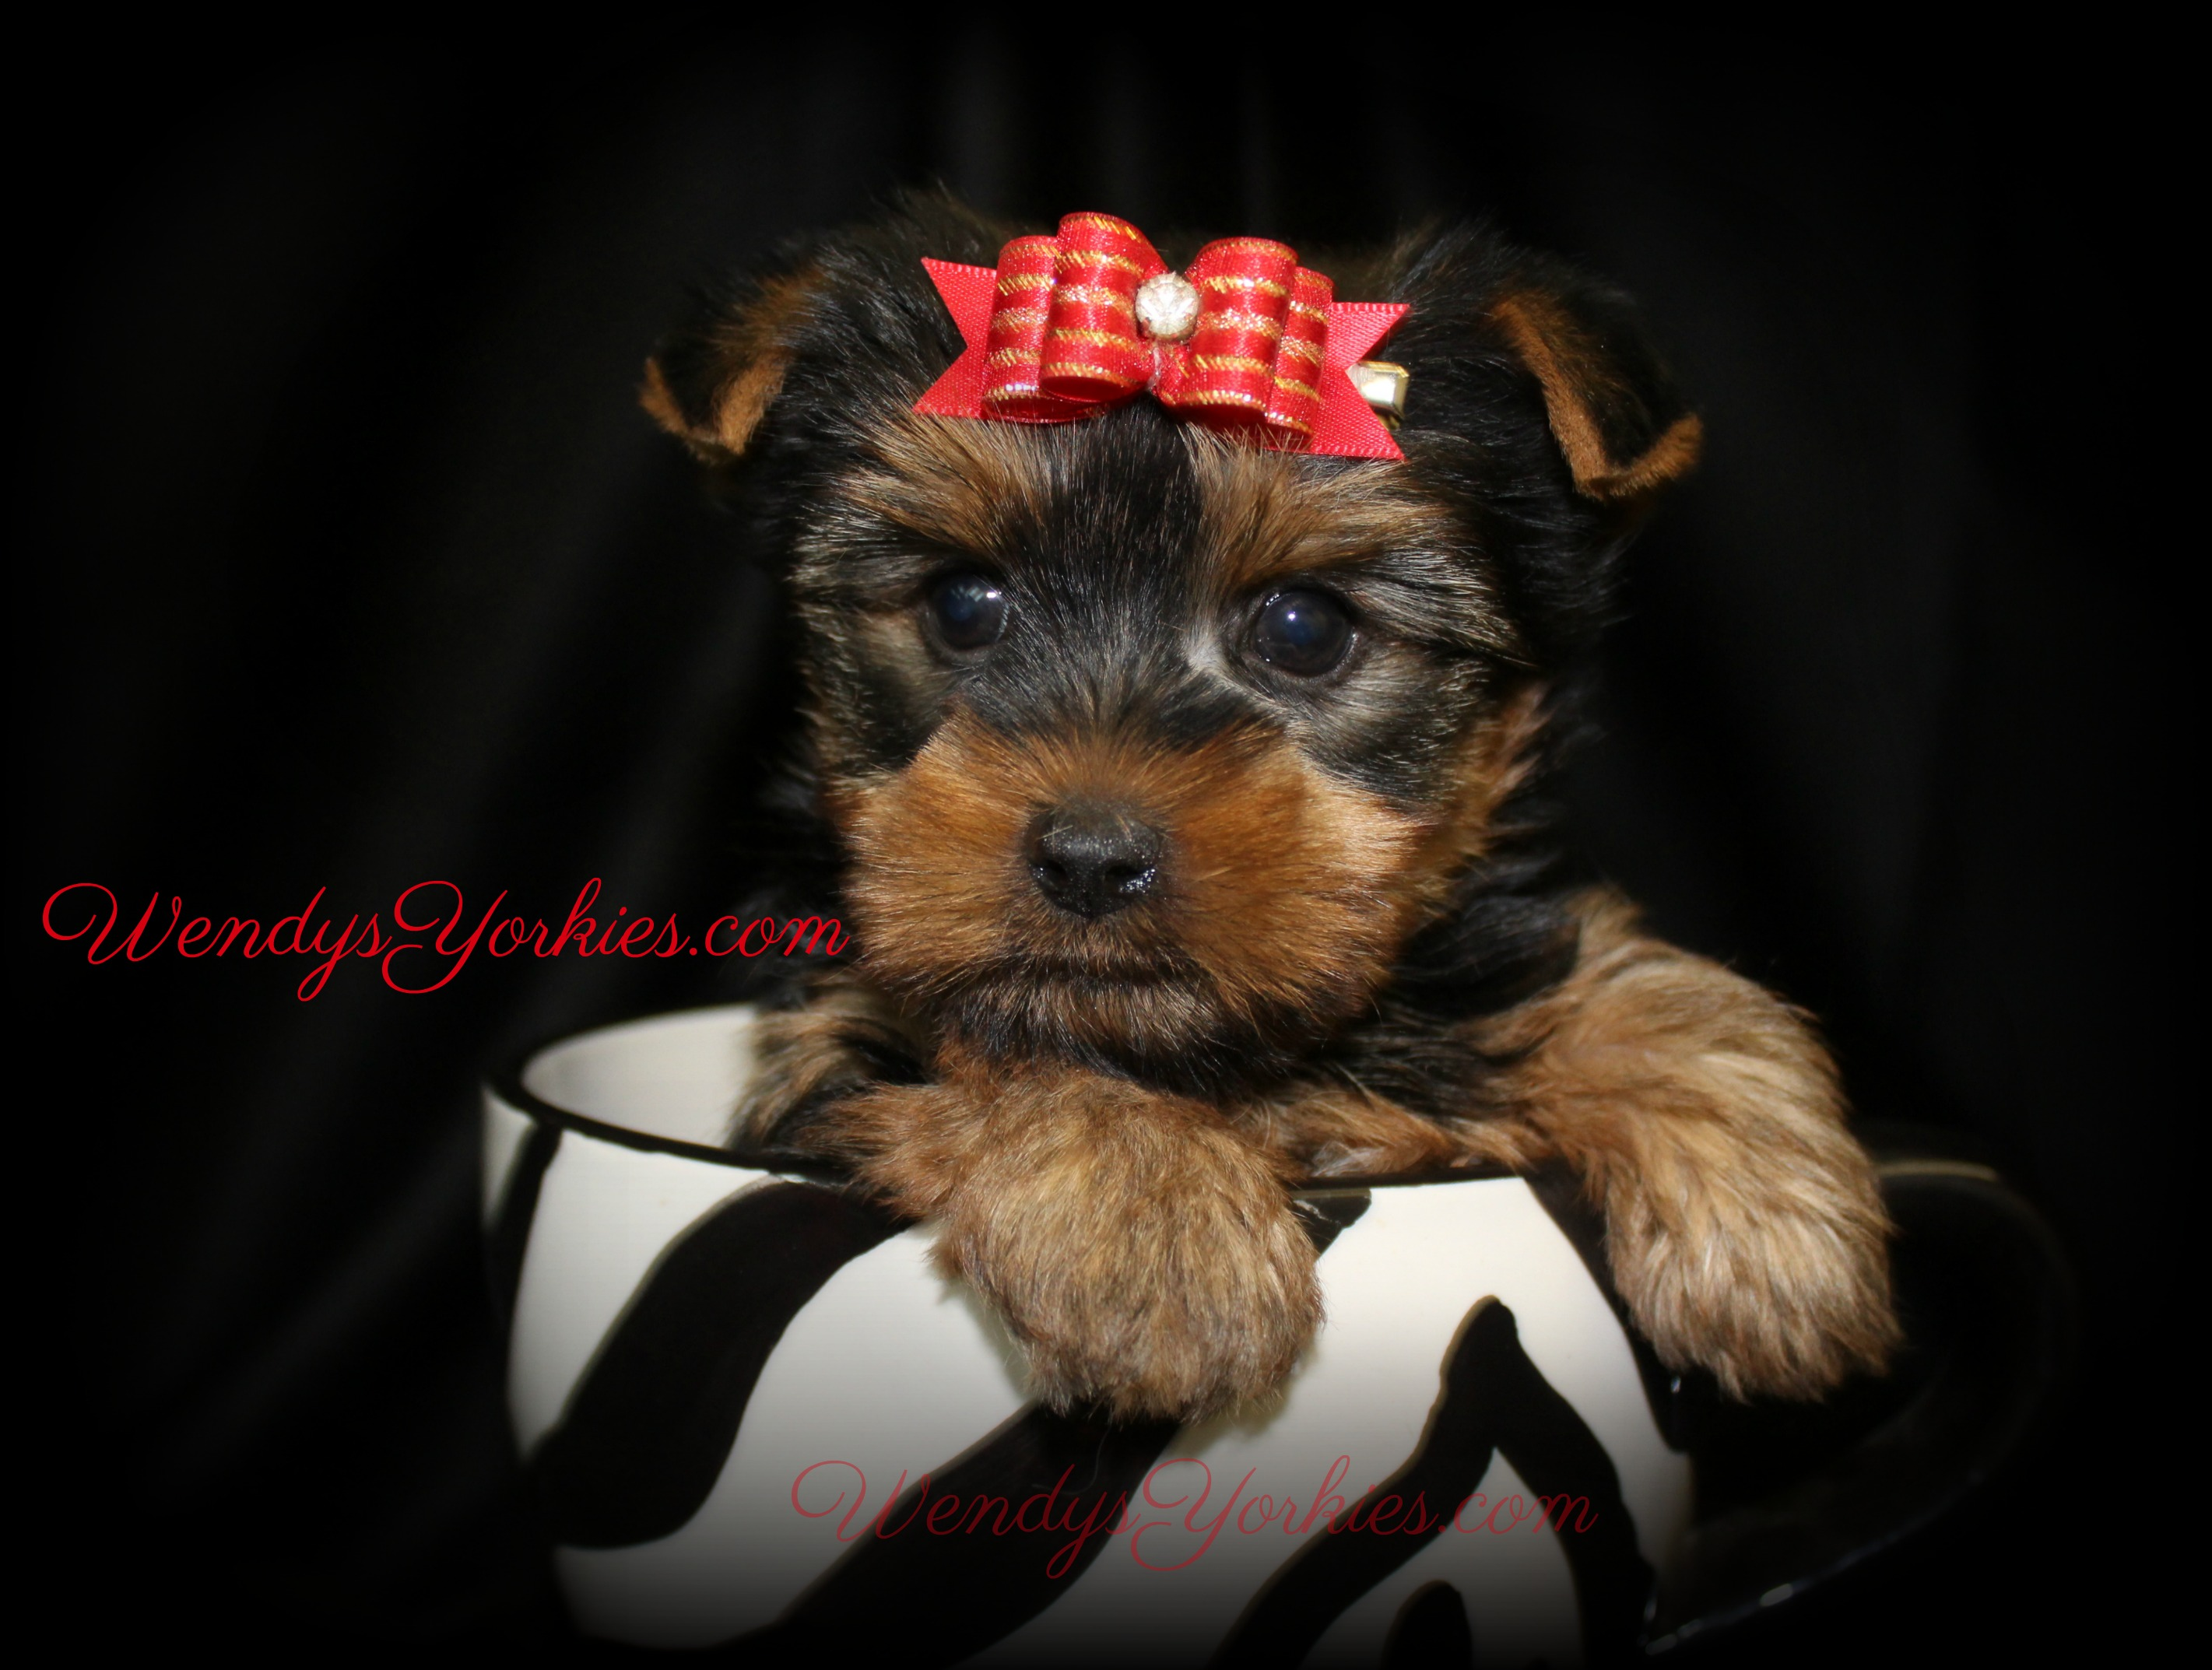 Teacup Yorkie puppy for sale, WendysYorkies.com, Star m1